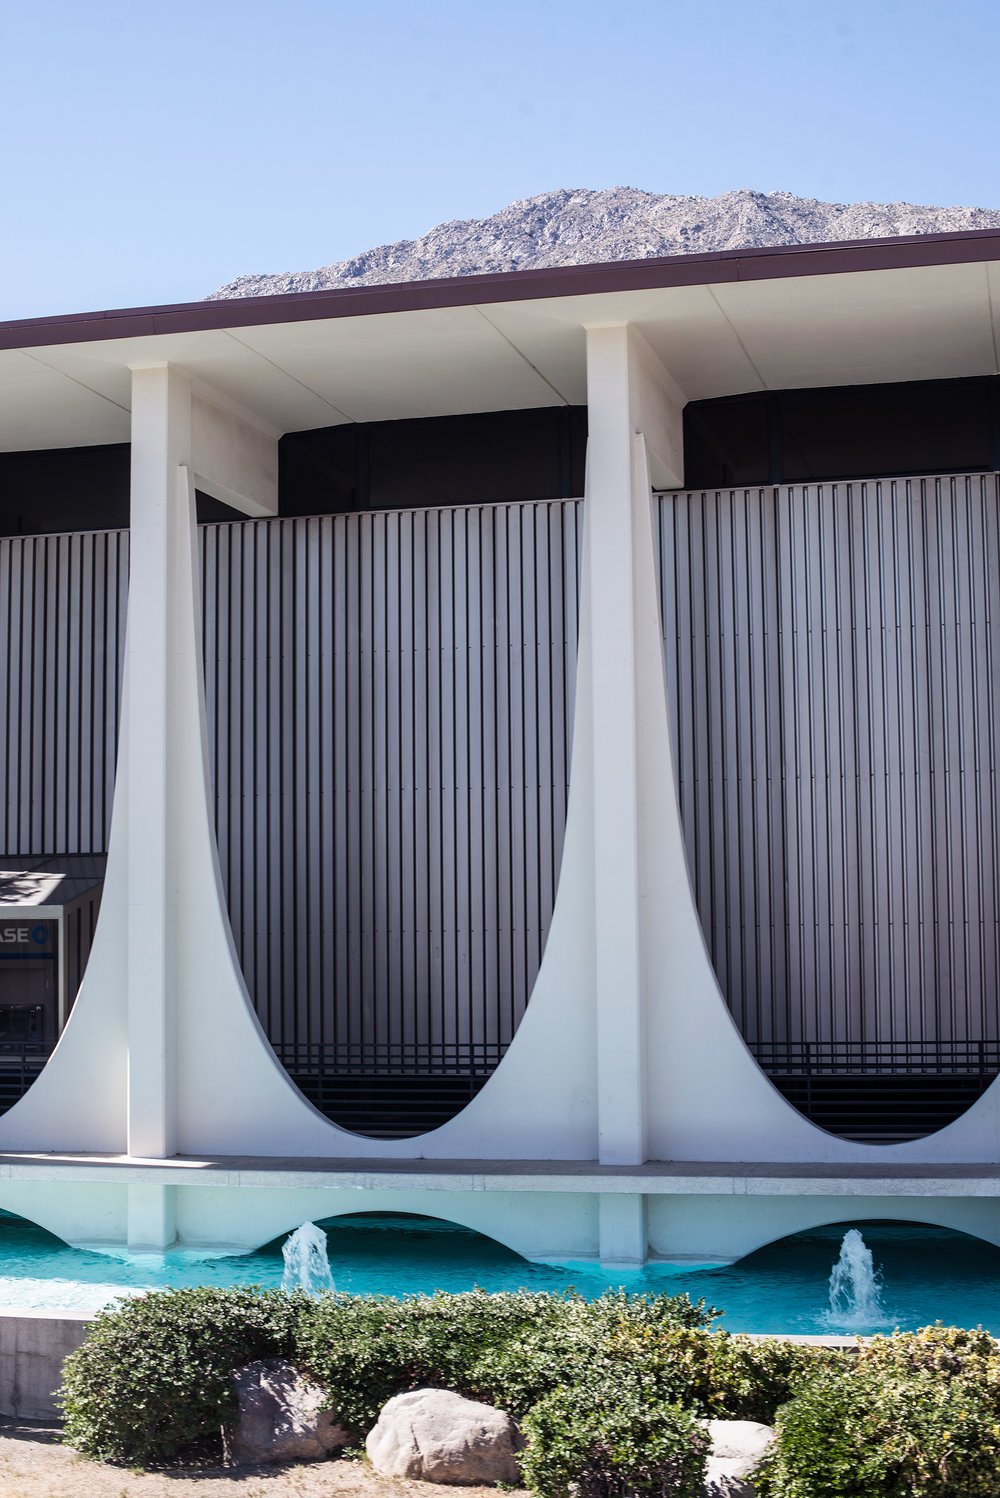 Now the Chase Bank and one of the more heavily photographed buildings in Palm Springs, designed by E. Stewart Williams